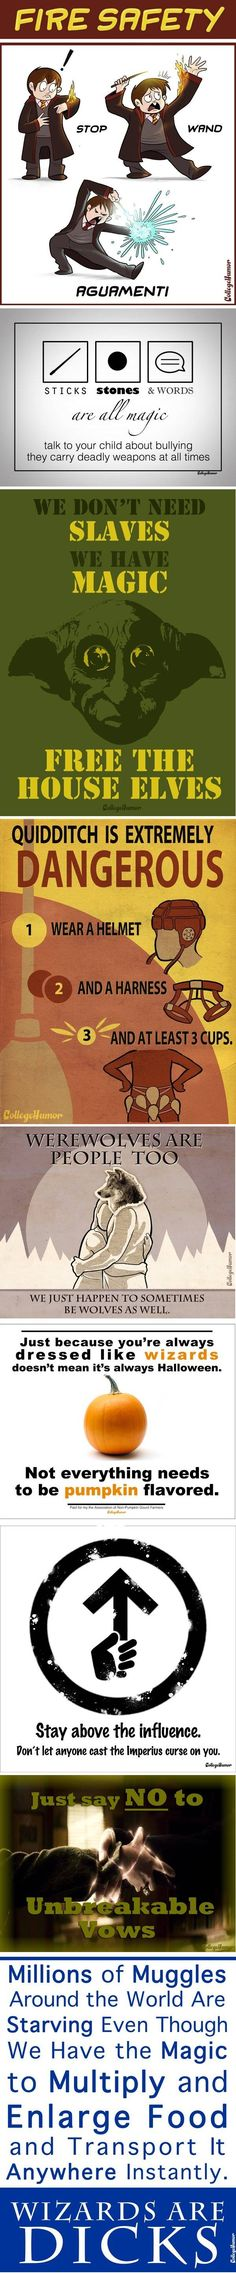 Harry Potter PSAs by College Humor    Note: the last one isn't technically true.